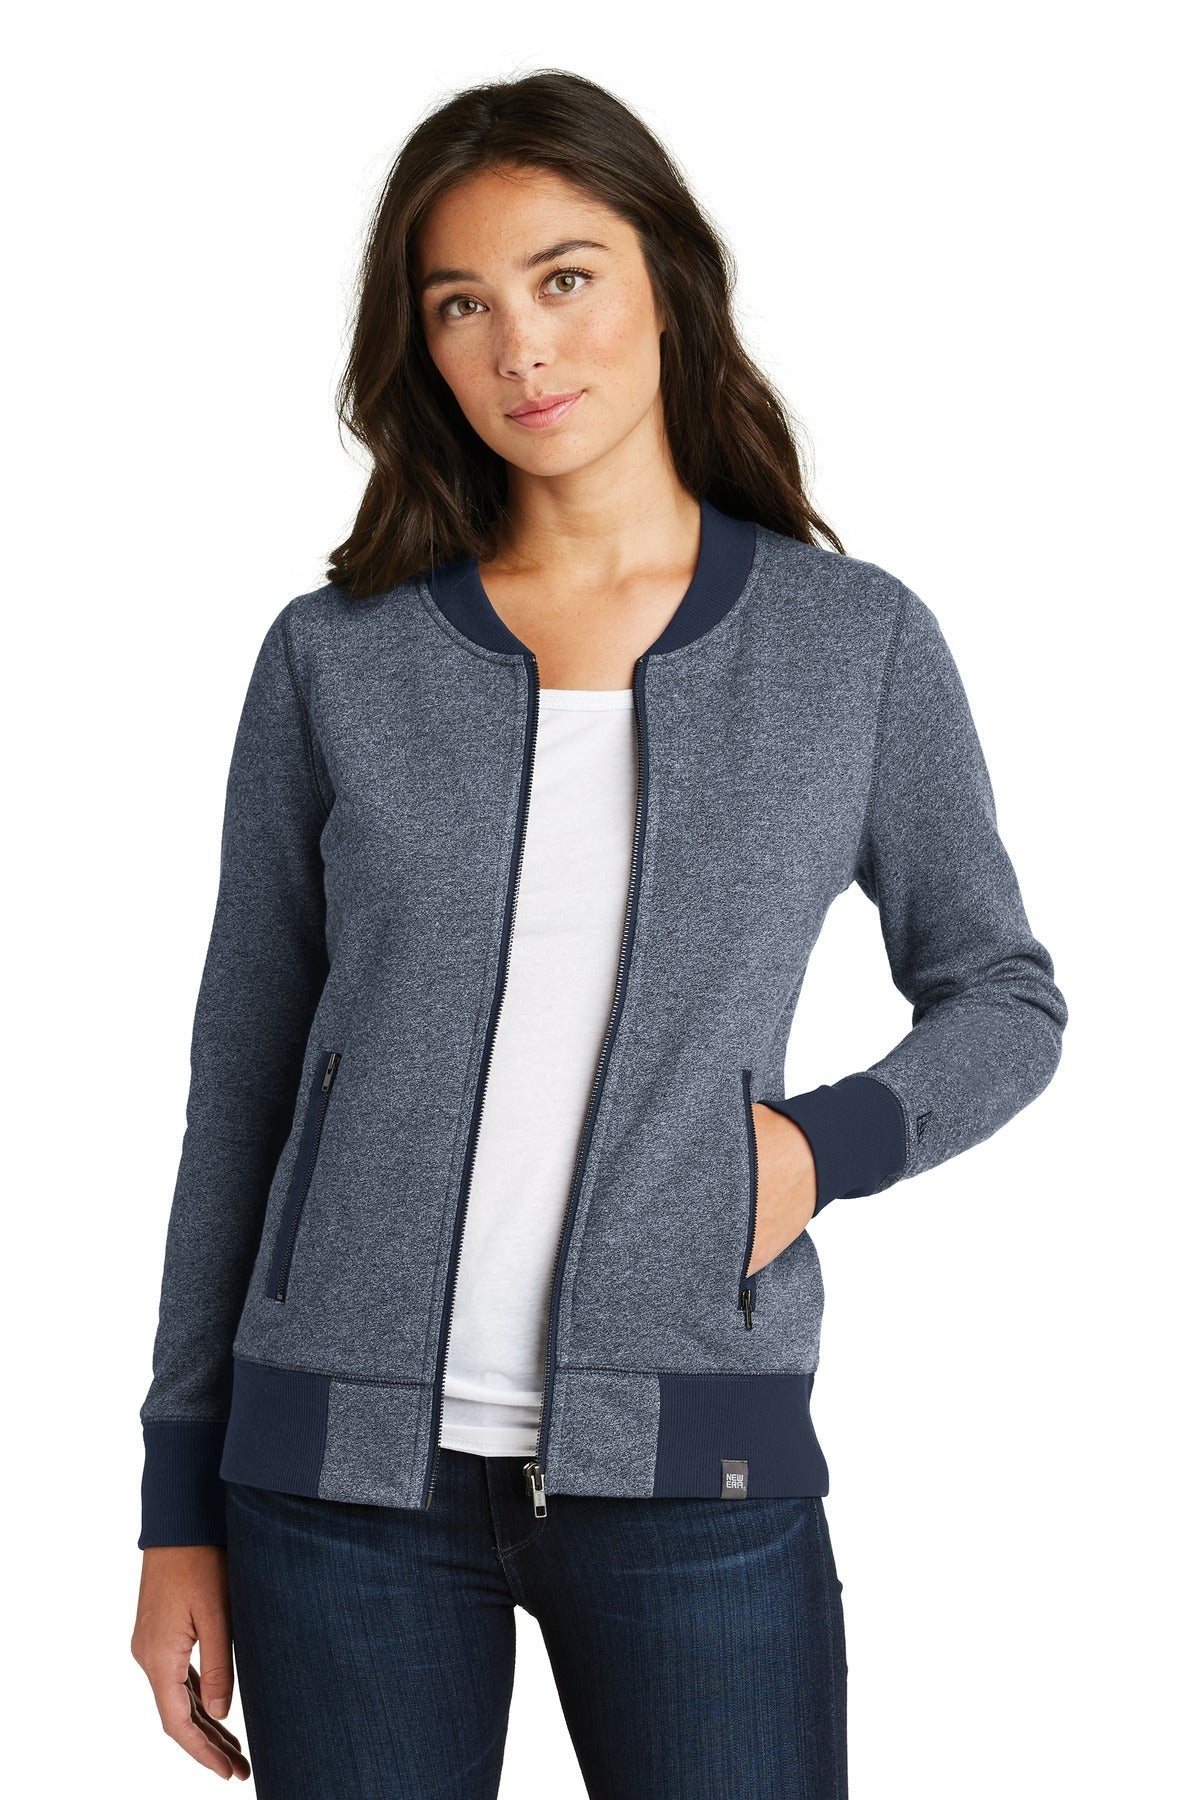 New Era ® Ladies French Terry Baseball Full-Zip. LNEA503 - Aspire Zone